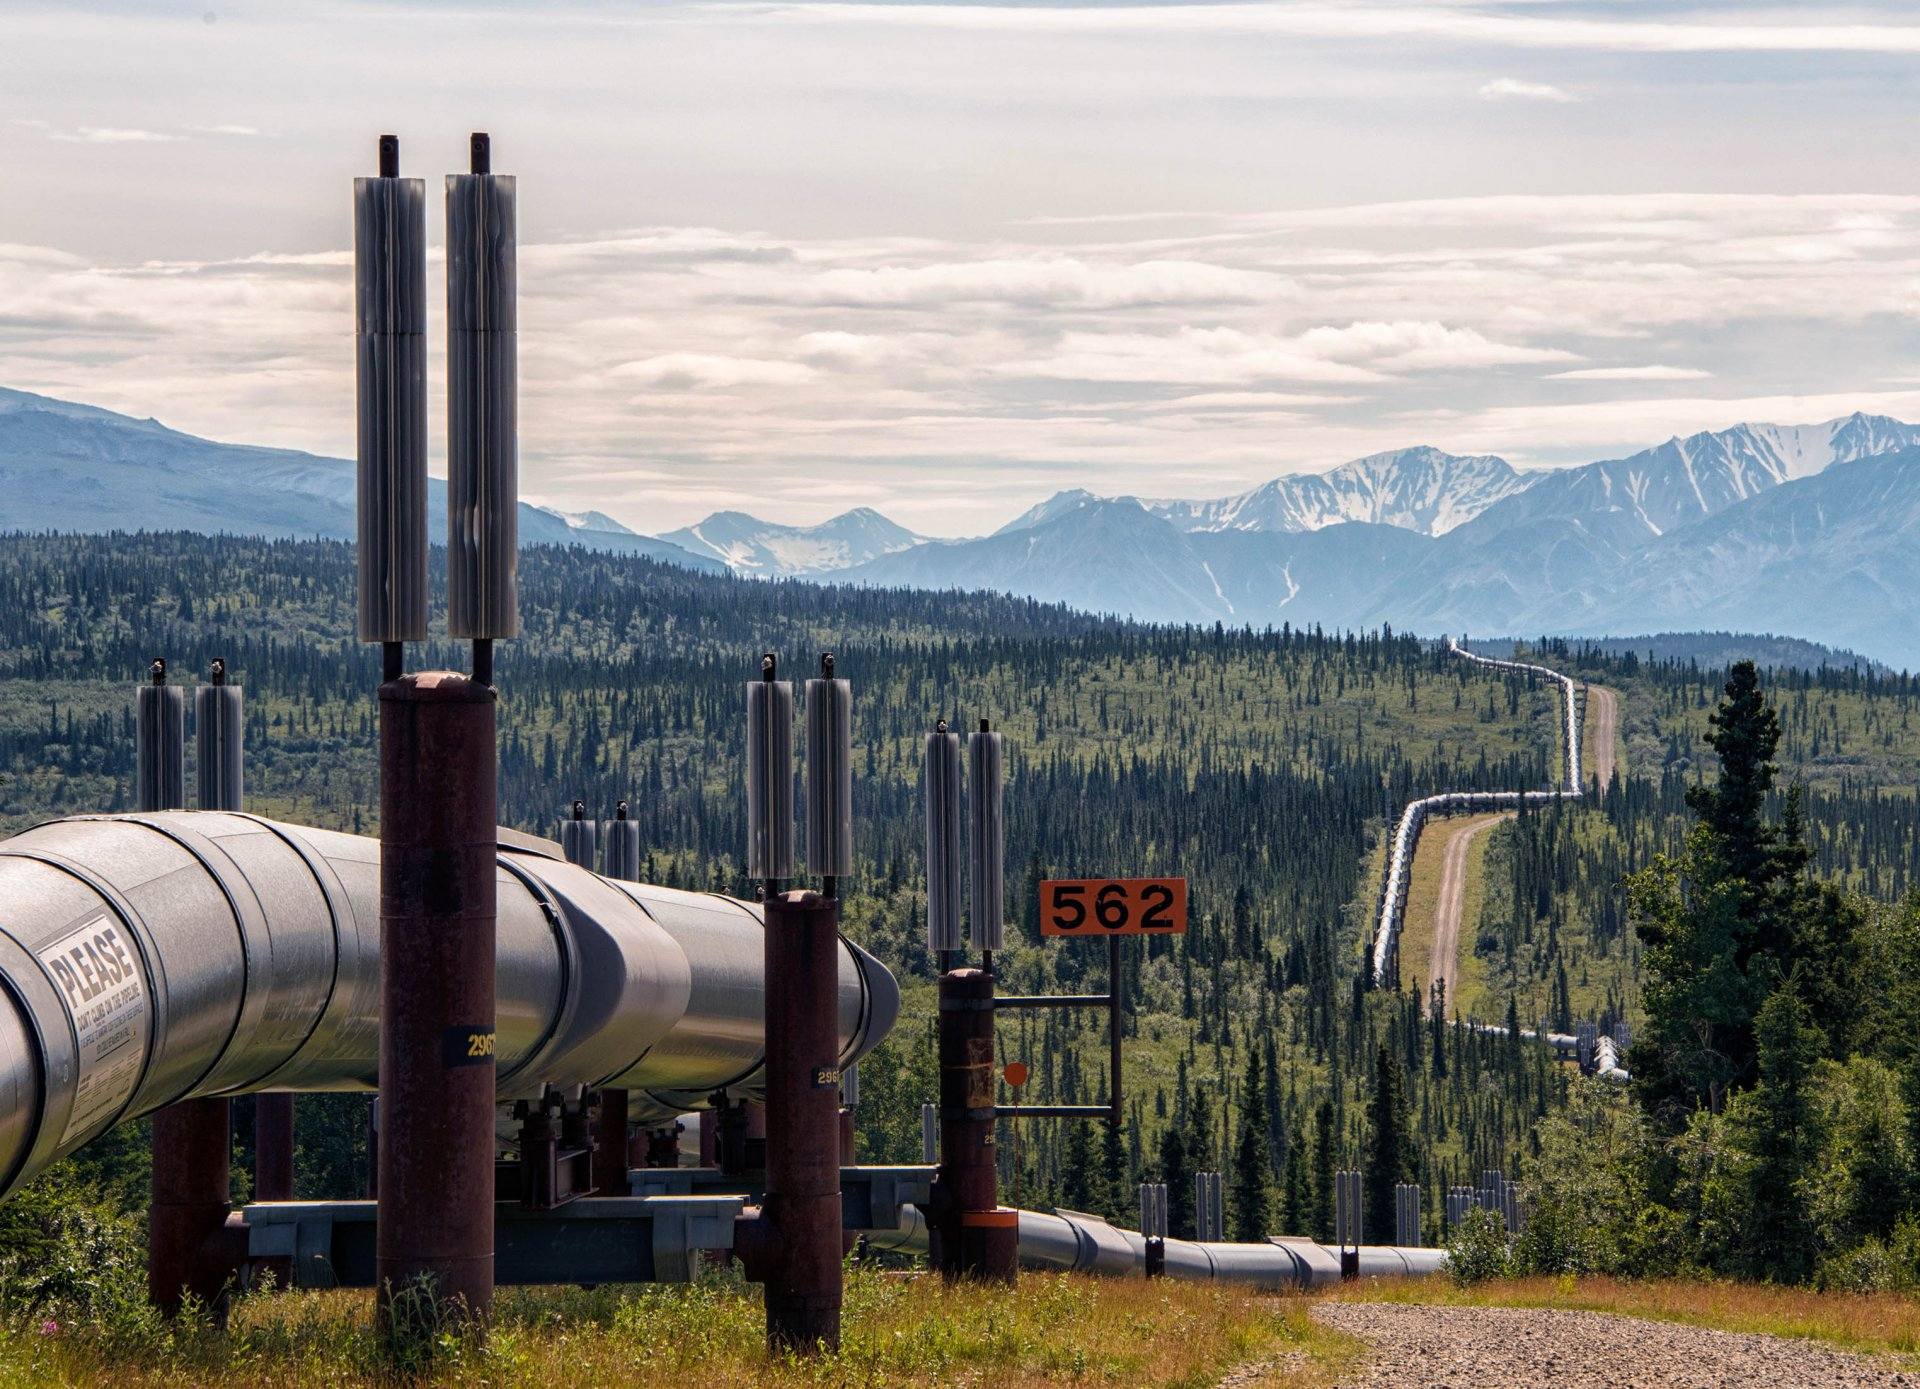 The trans-Alaskan pipeline transports thousands of gallons of oil across the Alaskan wilderness each day. | Photo by Luca Galuzzi